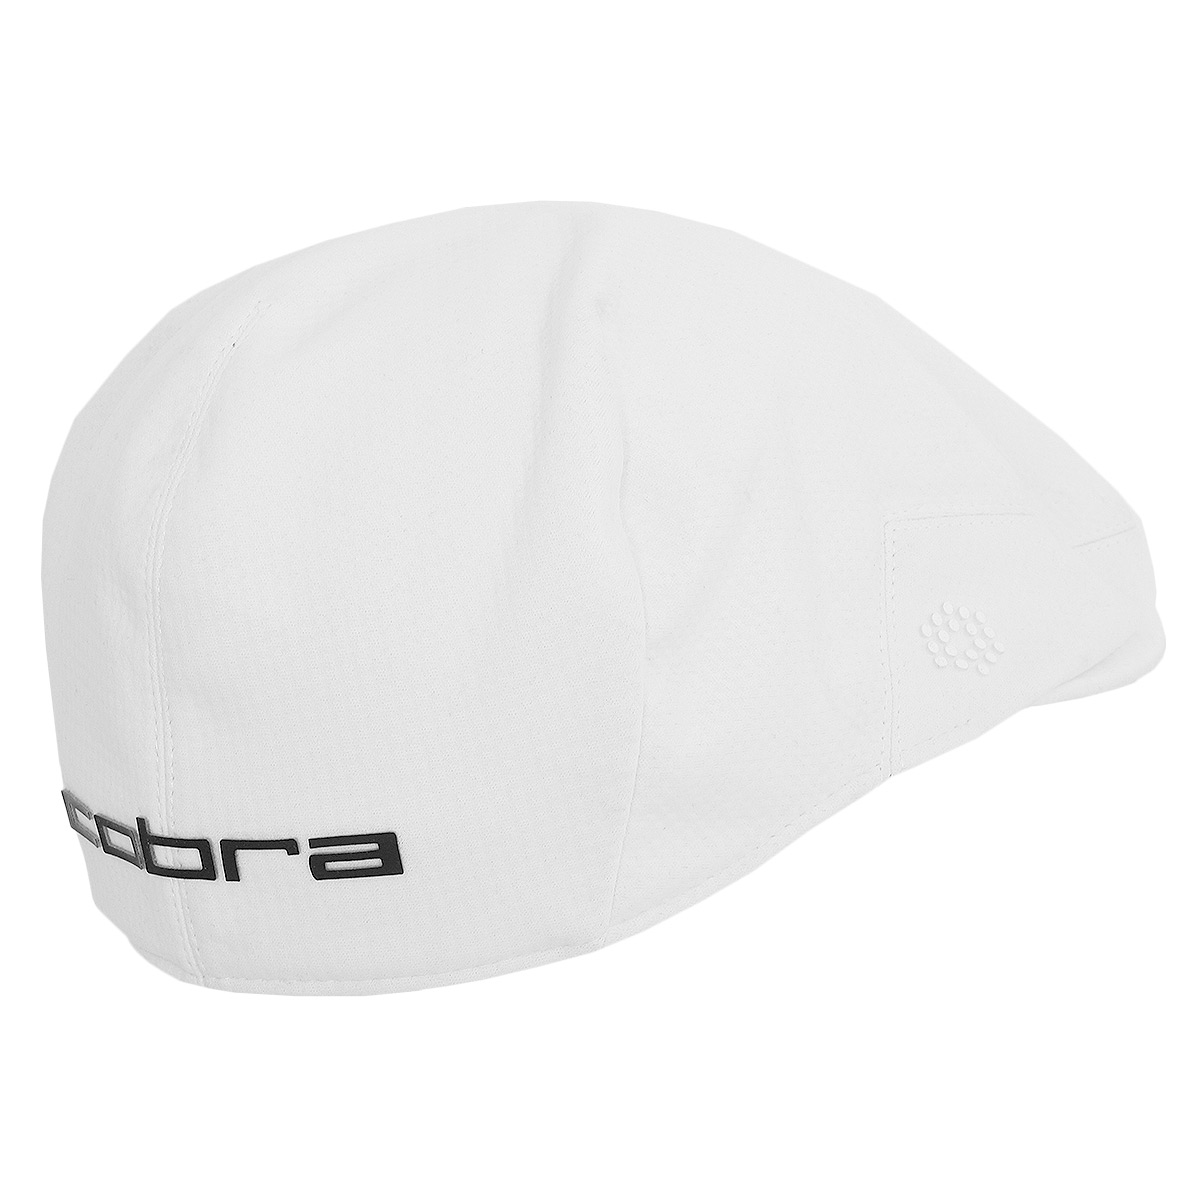 385918624e4d Puma Golf Mens Tour Driver Moisture Wicking Performance Cap | eBay